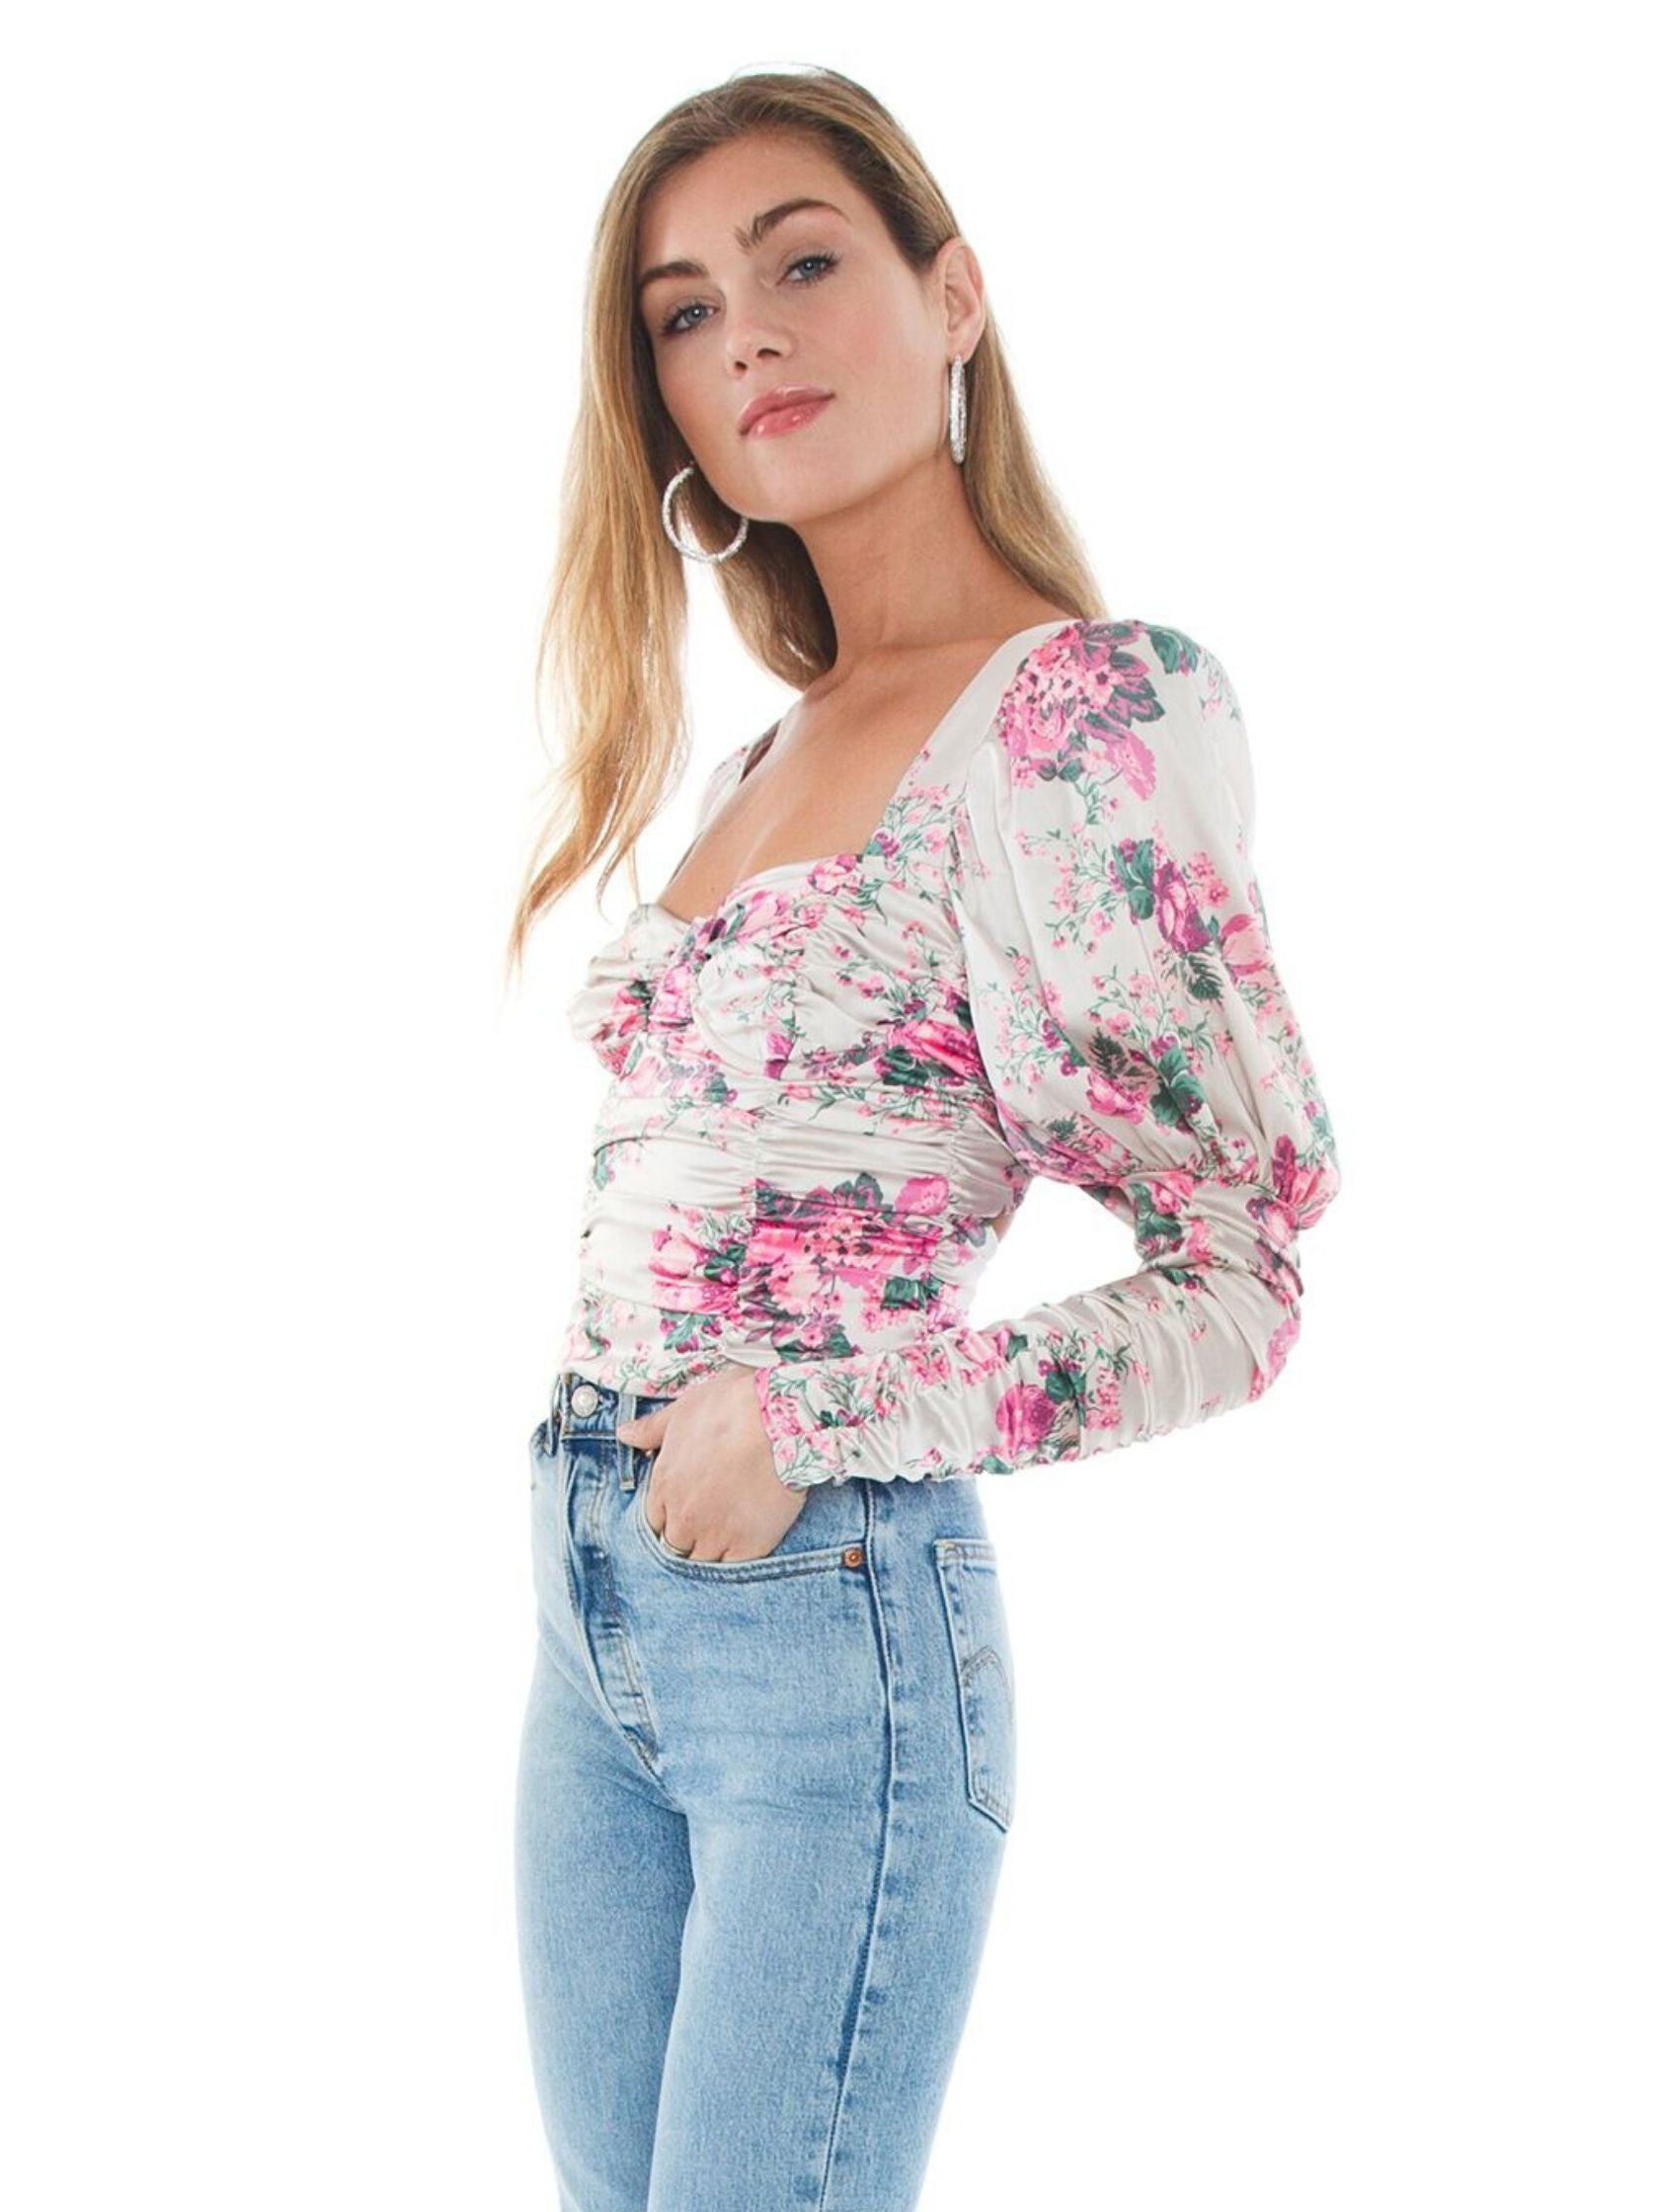 Women wearing a top rental from For Love & Lemons called Palais Floral Crop Top